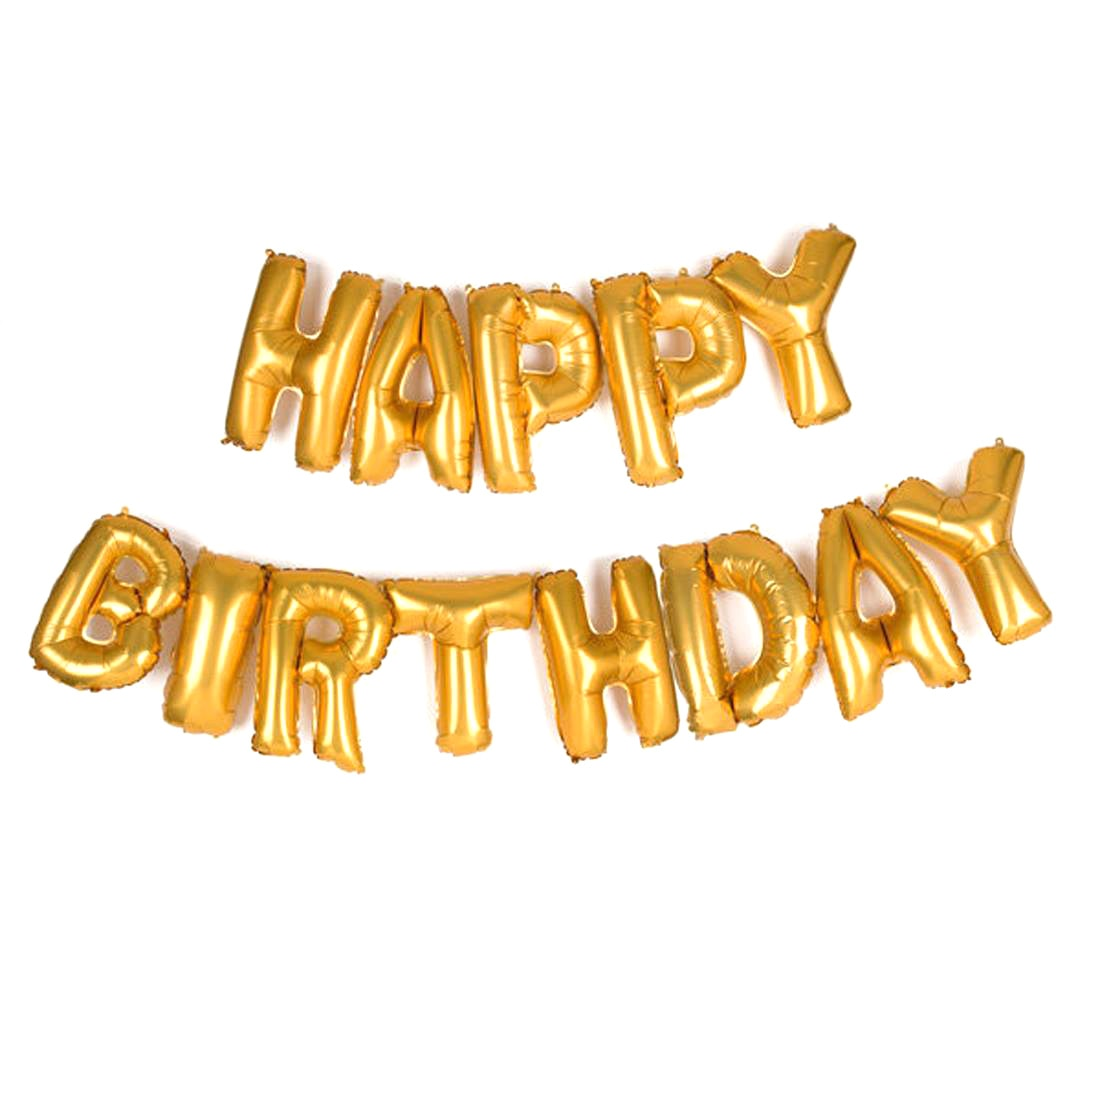 HAPPY BIRTHDAY Golden Letters Foil Balloons For Birthday Party-Set of 13 letters